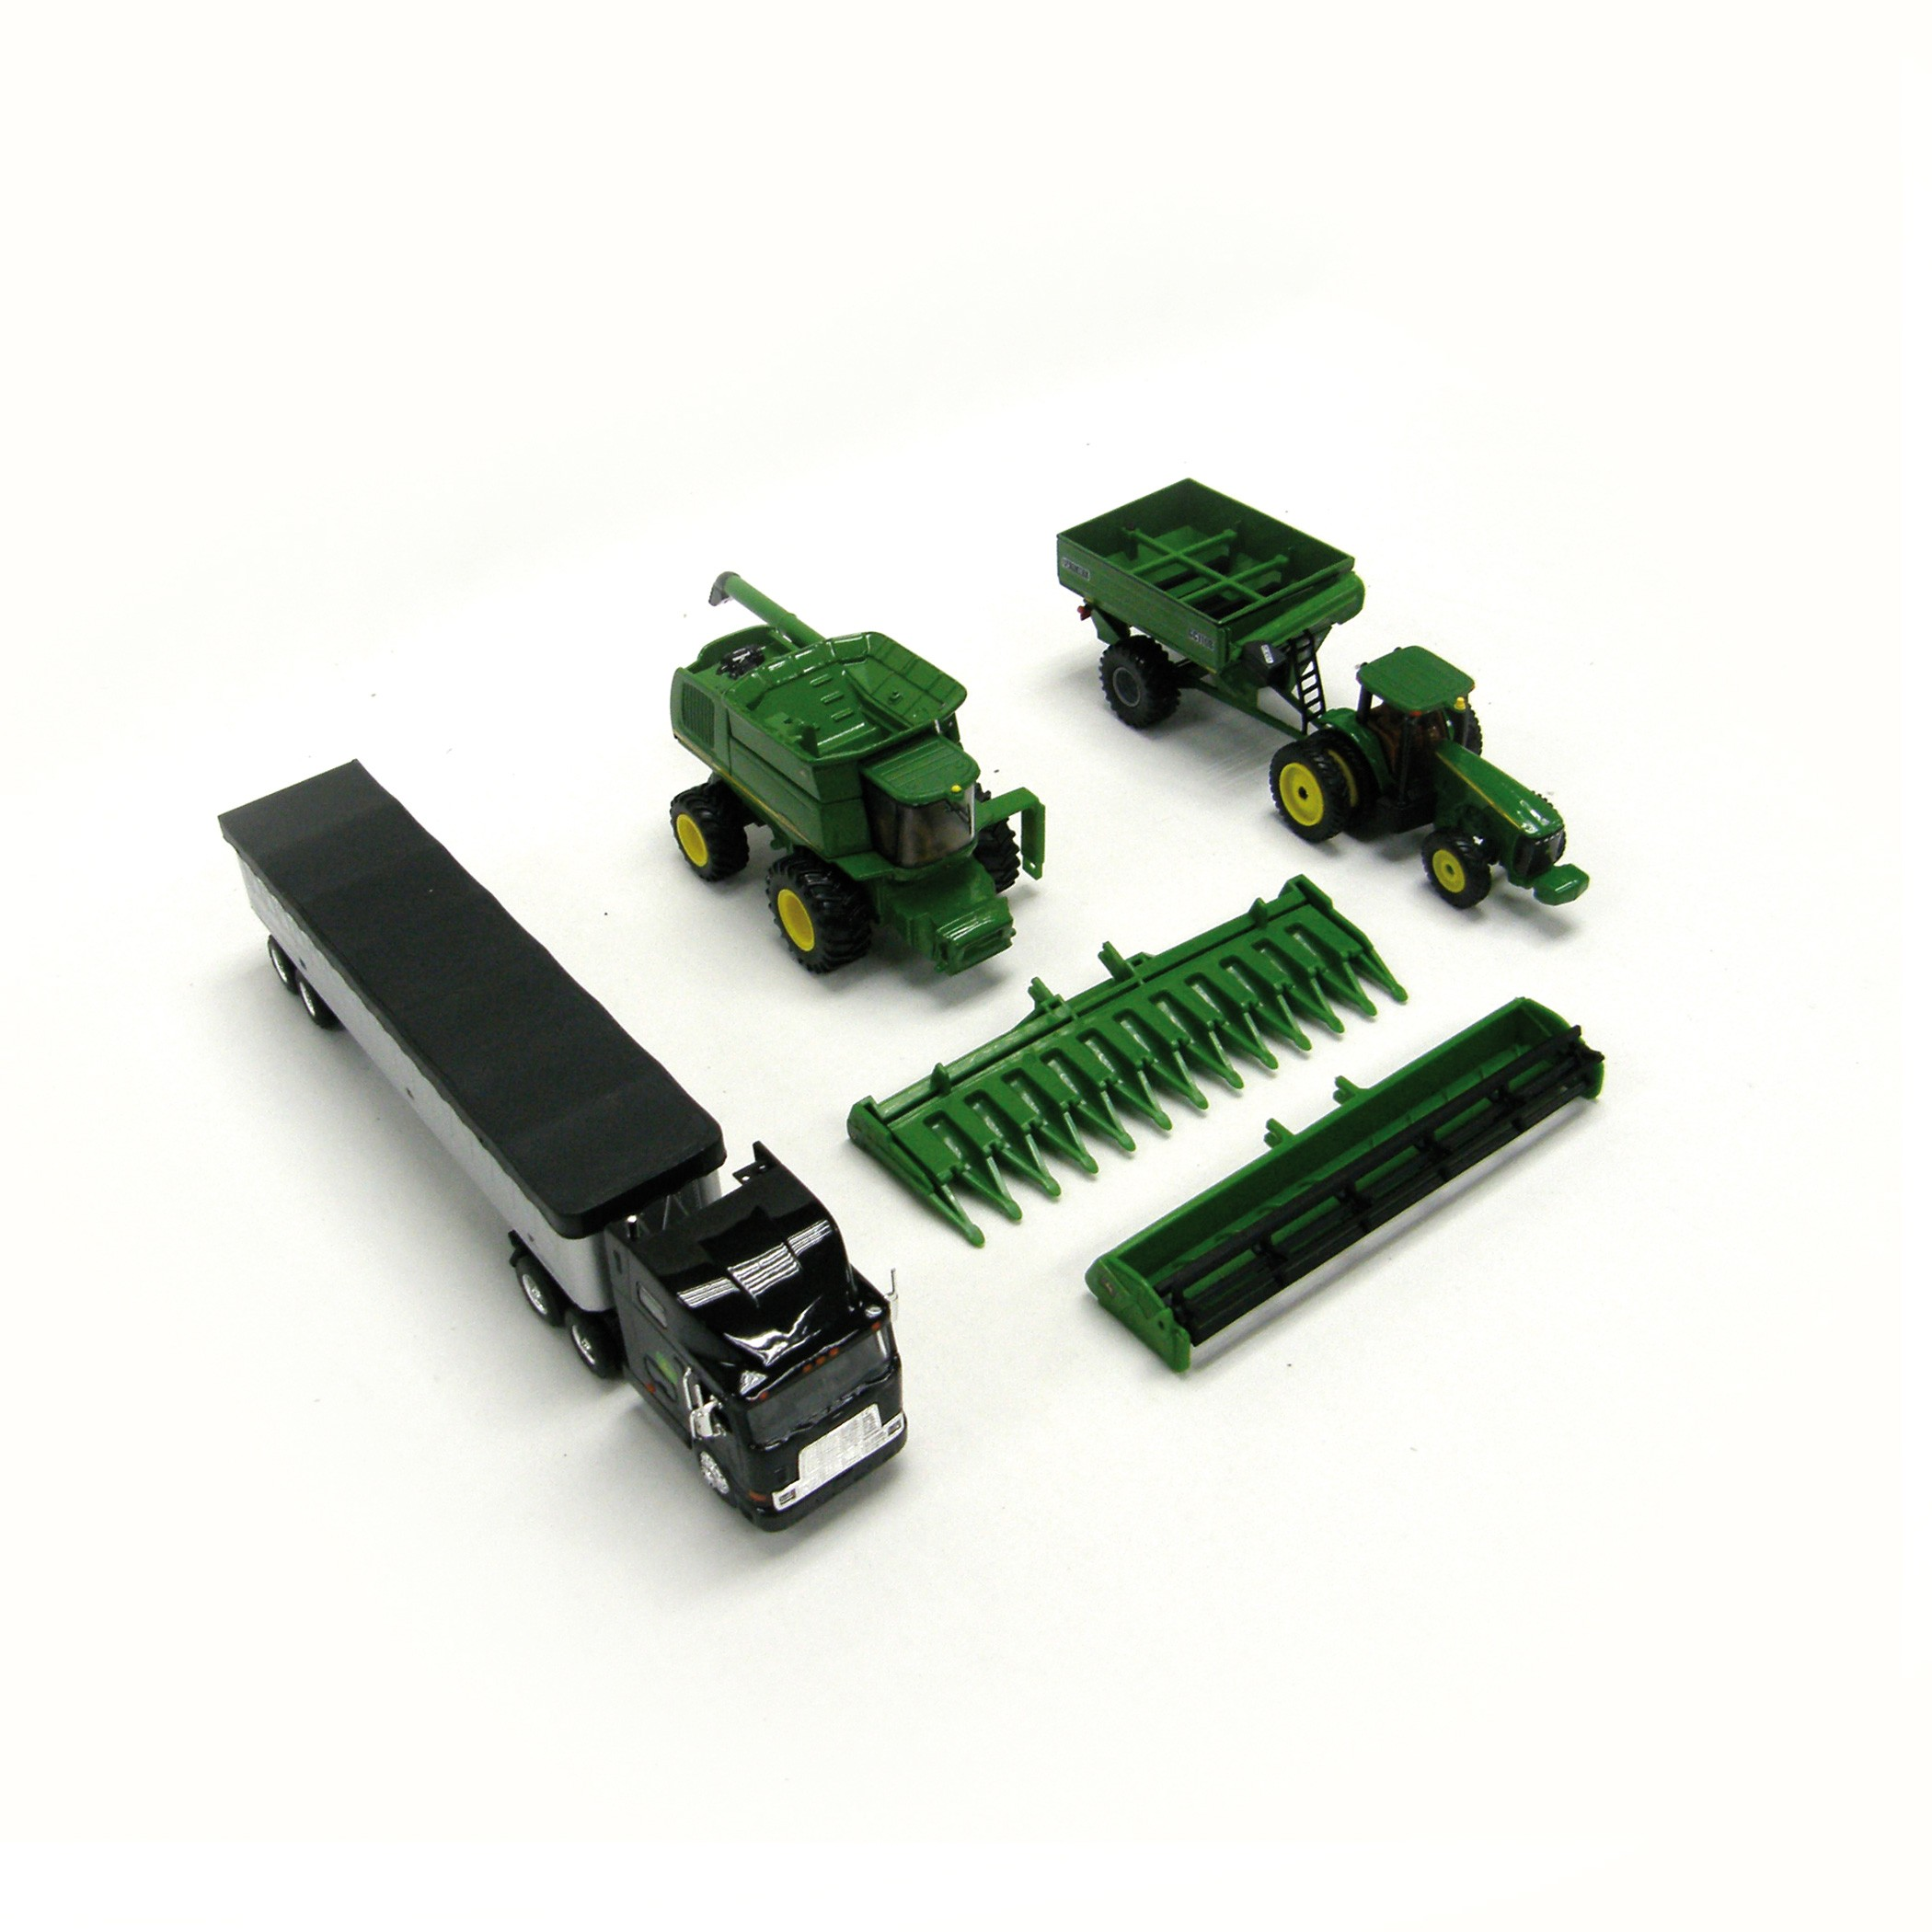 With this multiple piece 1:64 M6 John Deere Harvesting Set, your child ...